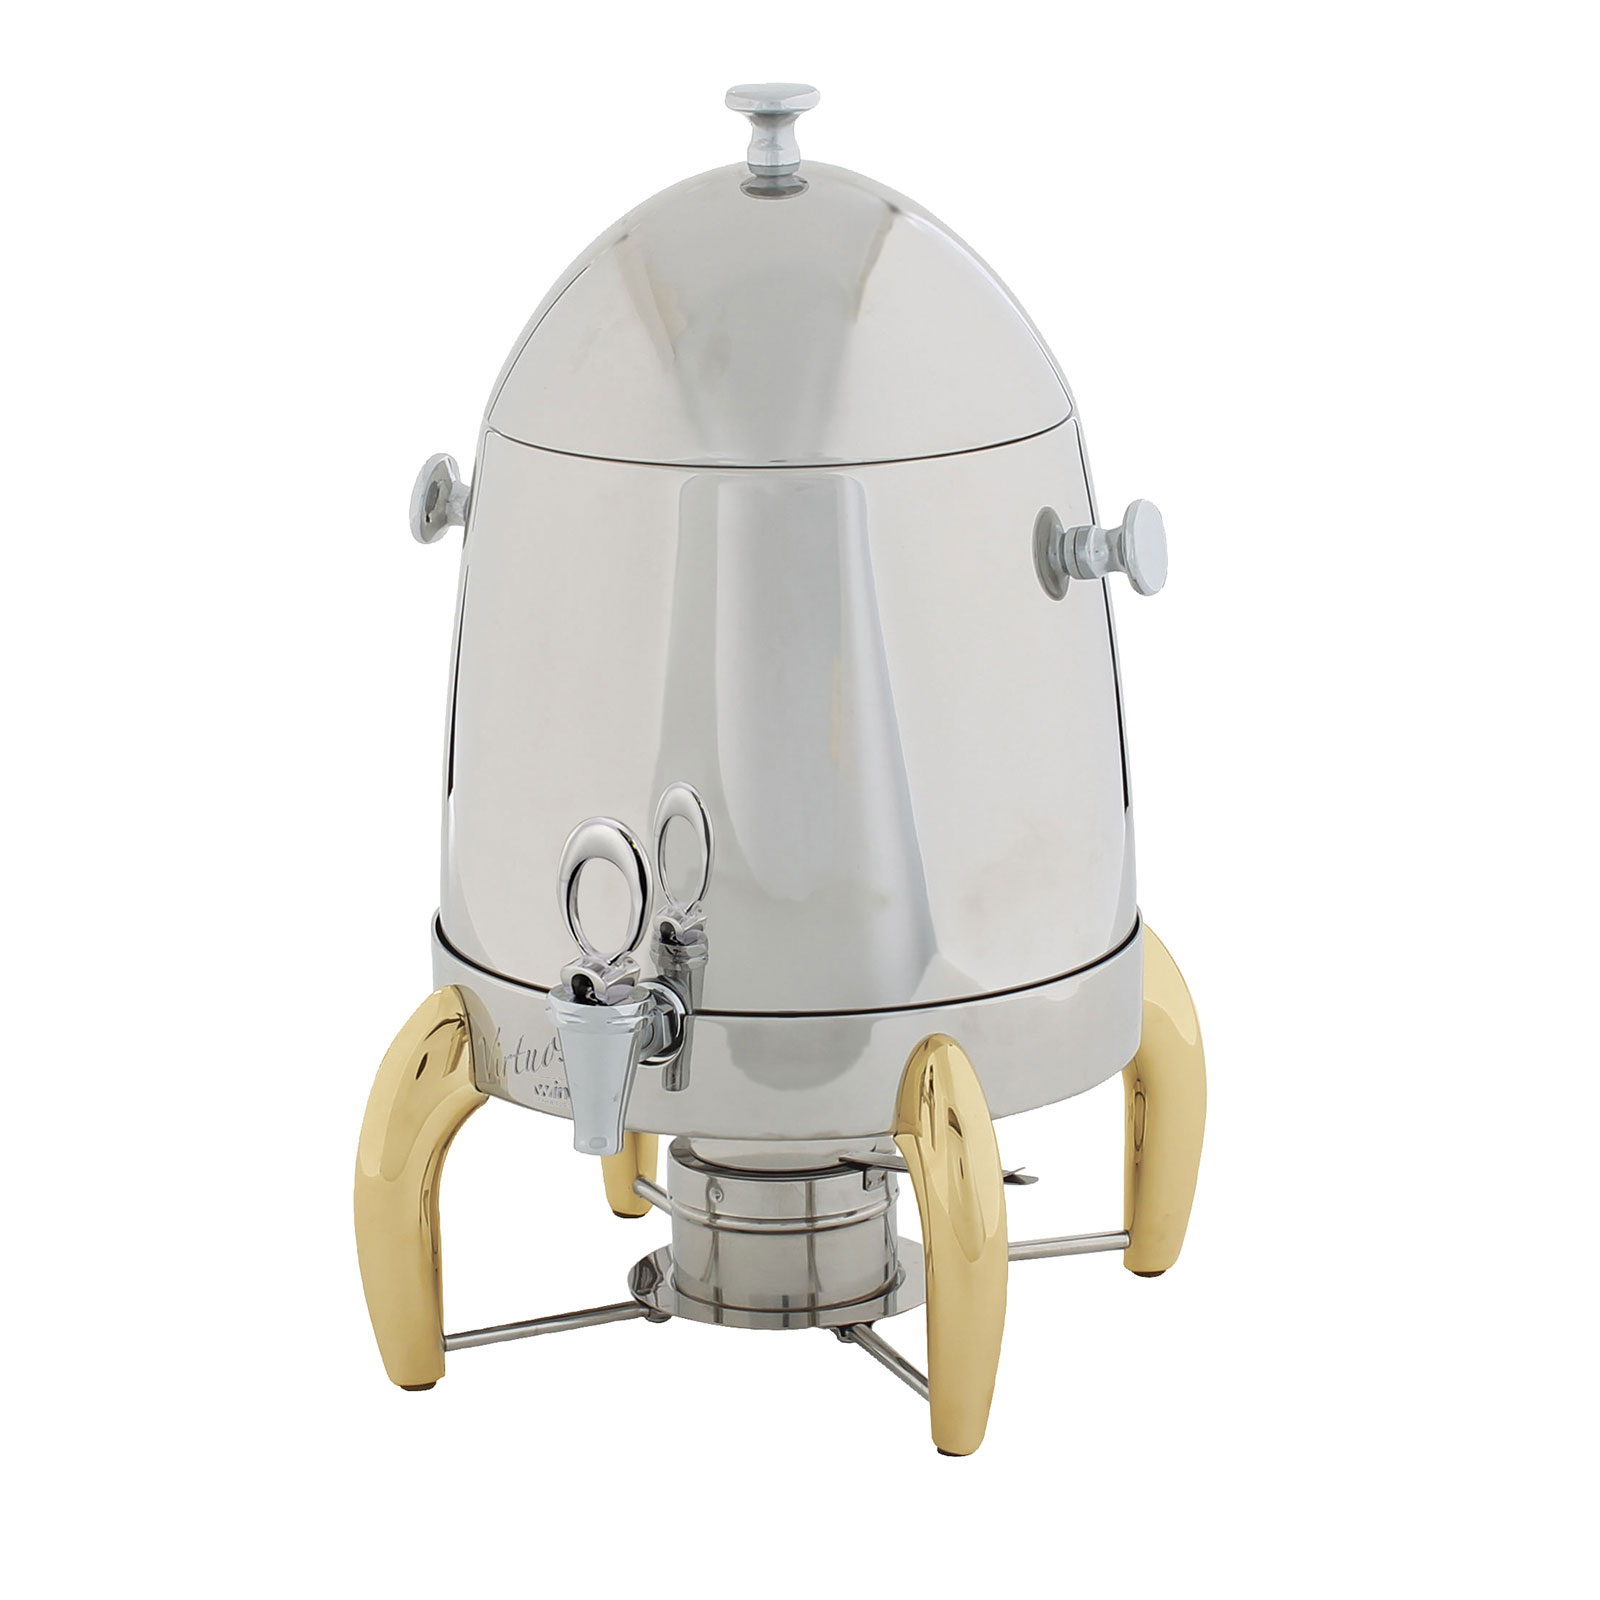 Winco 903A coffee chafer urn